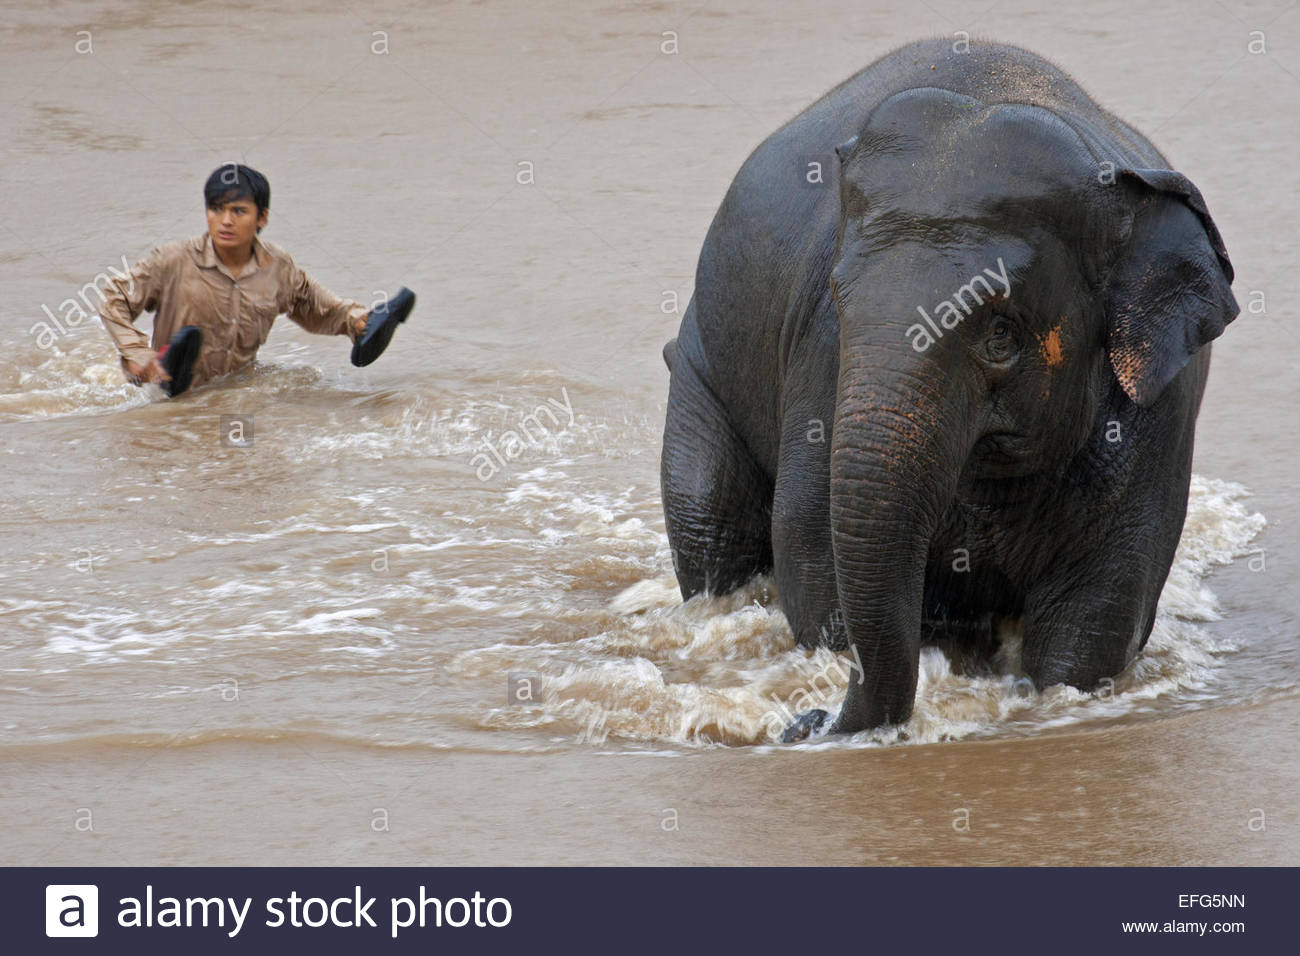 Asian elephant (Elephas maximus) crossing river followed by mahout - Stock Image